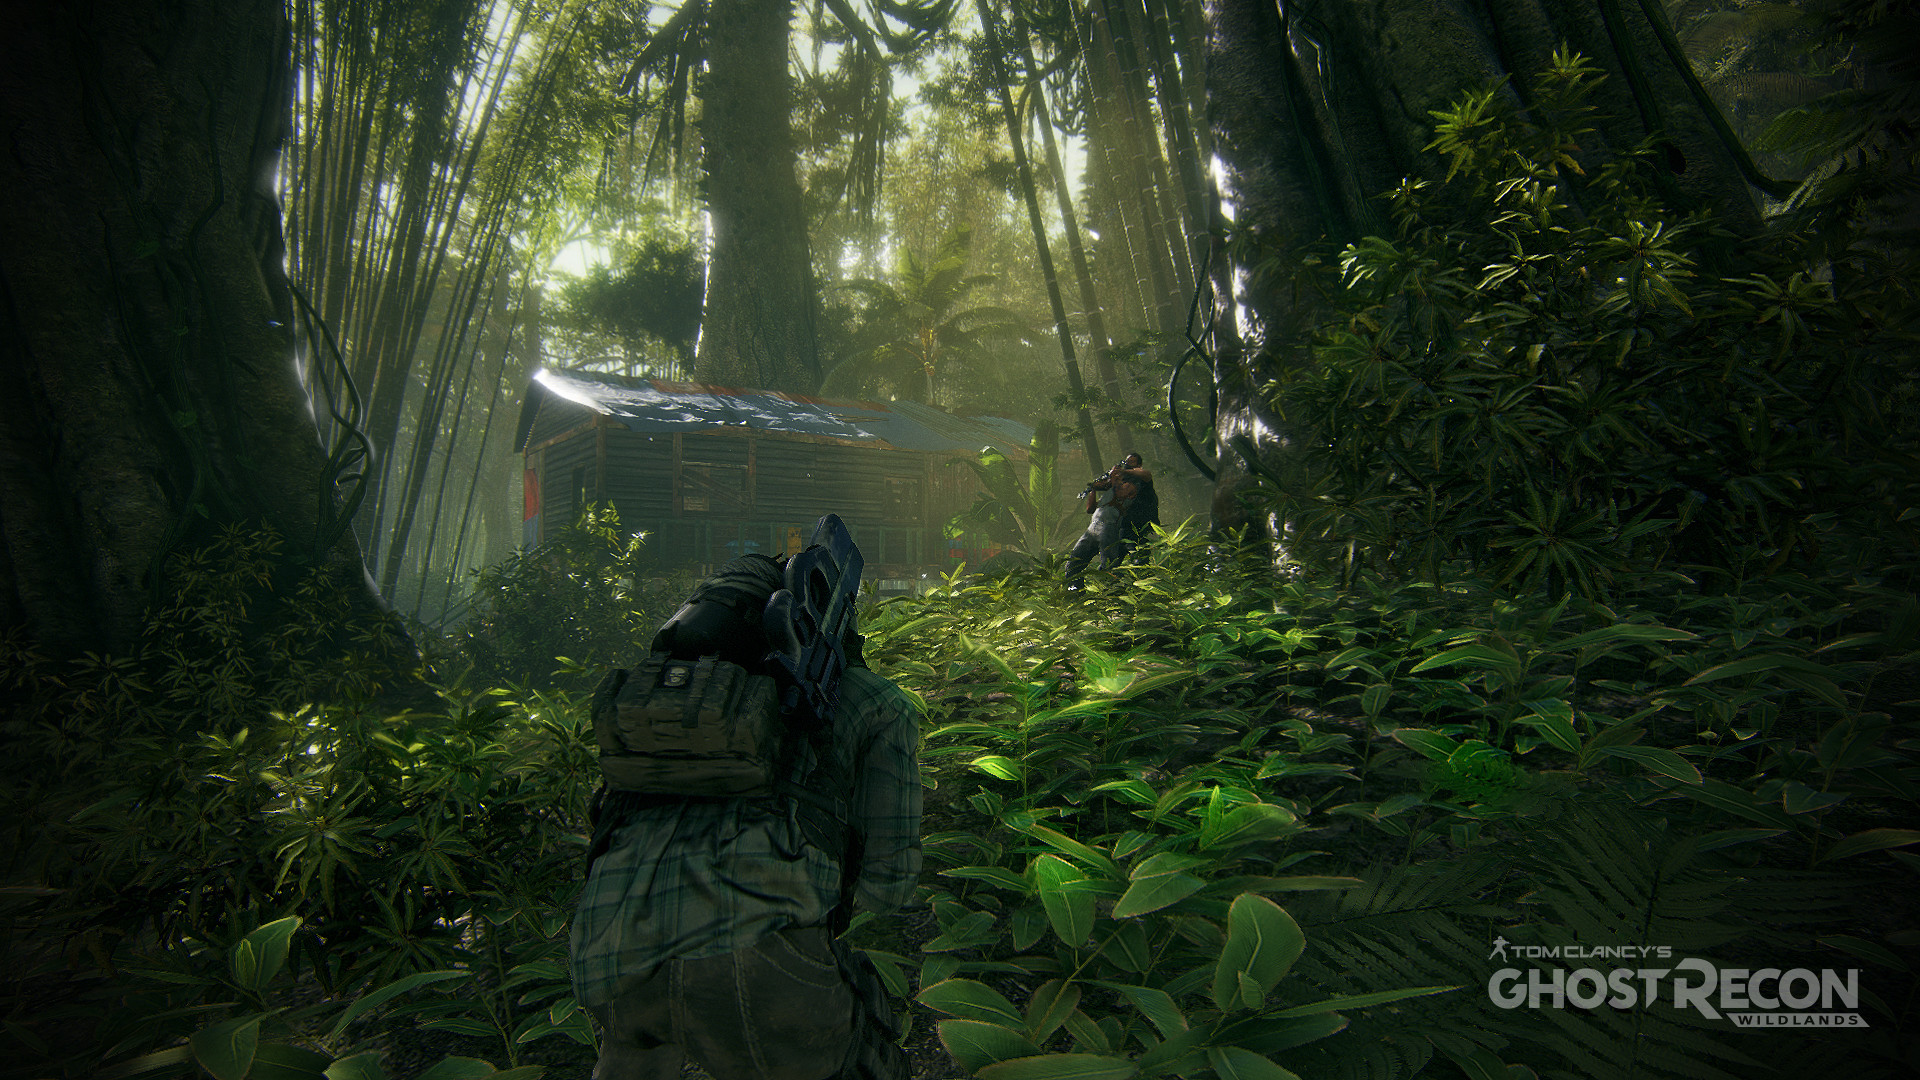 Ghost Recon Wildlands 4k Posted By Michelle Johnson